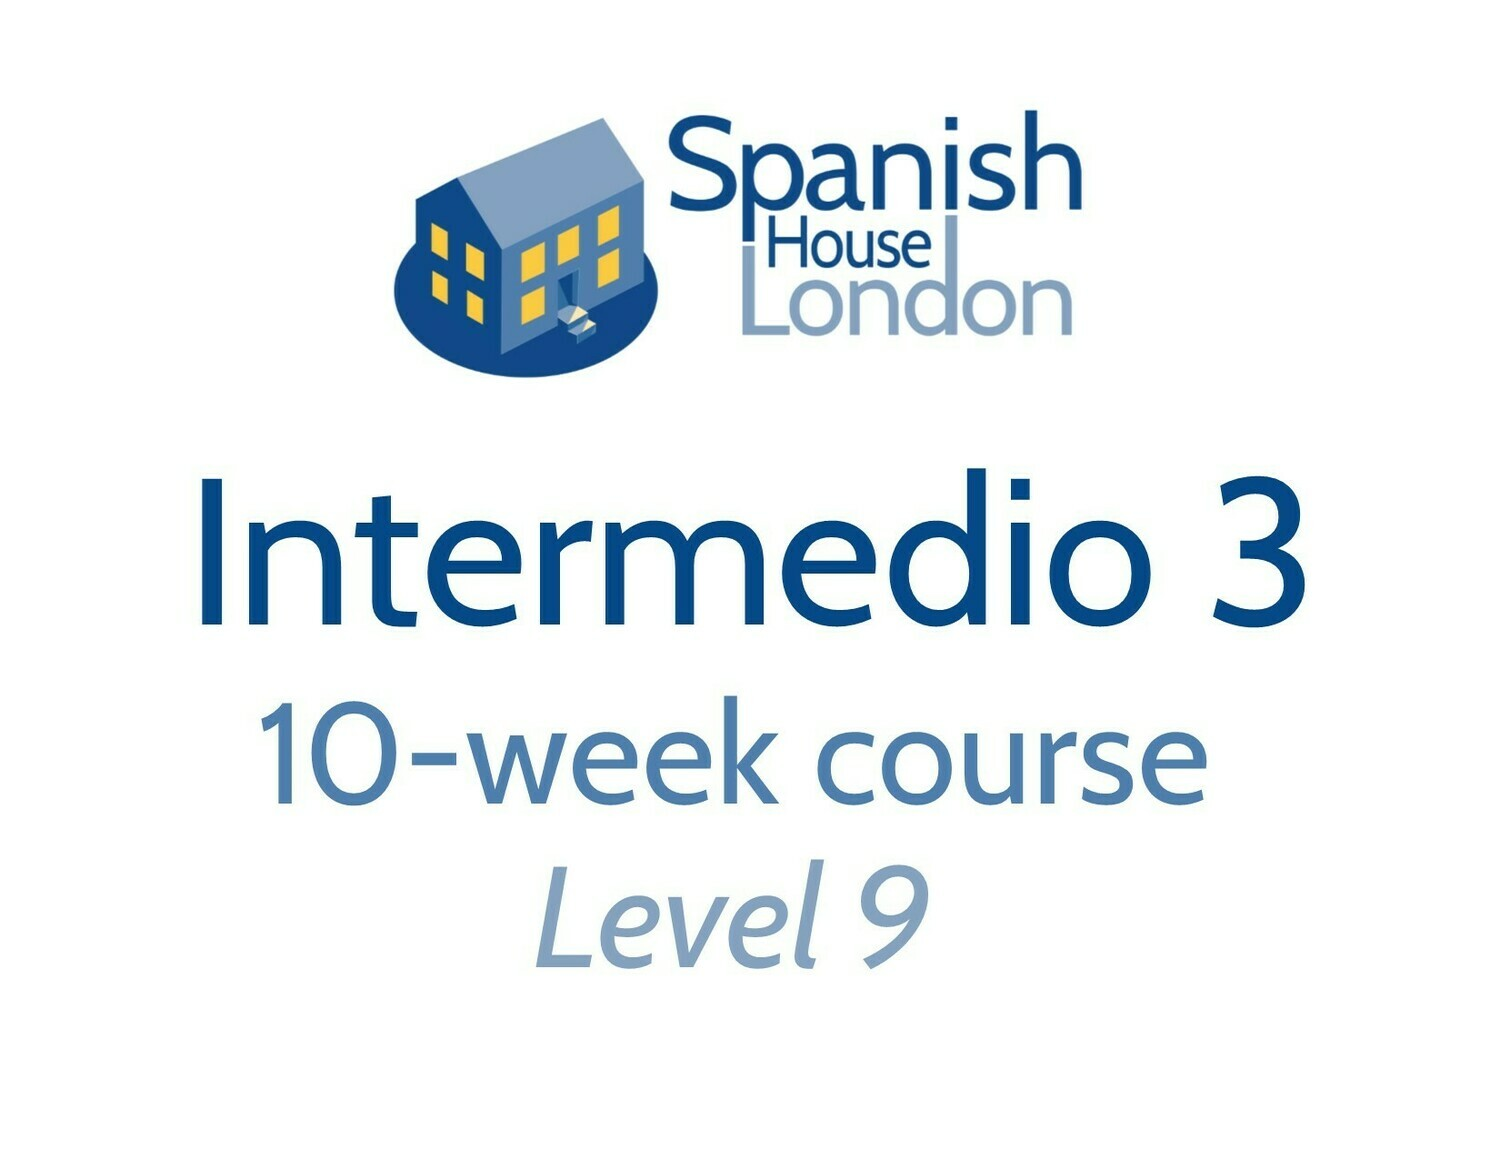 Intermedio 3 Course starting on 27th January at 6pm in Clapham North